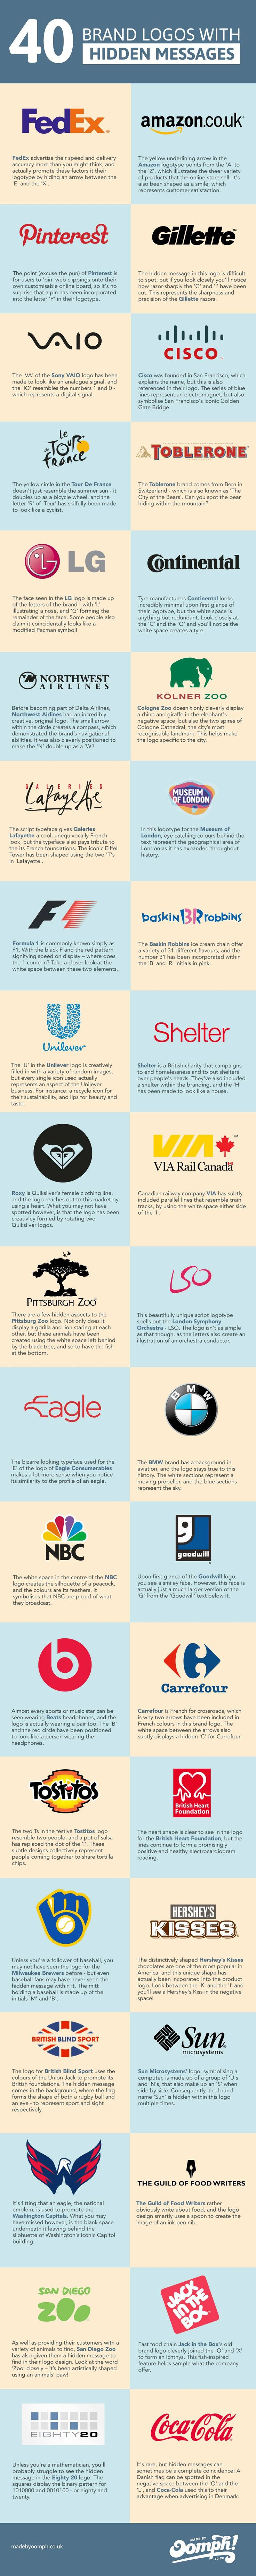 [INFOGRAPHIC] 40 brand logos with hidden messages—The likes of FedEx, Amazon, BMW and more have hidden messages within their logos; Details.